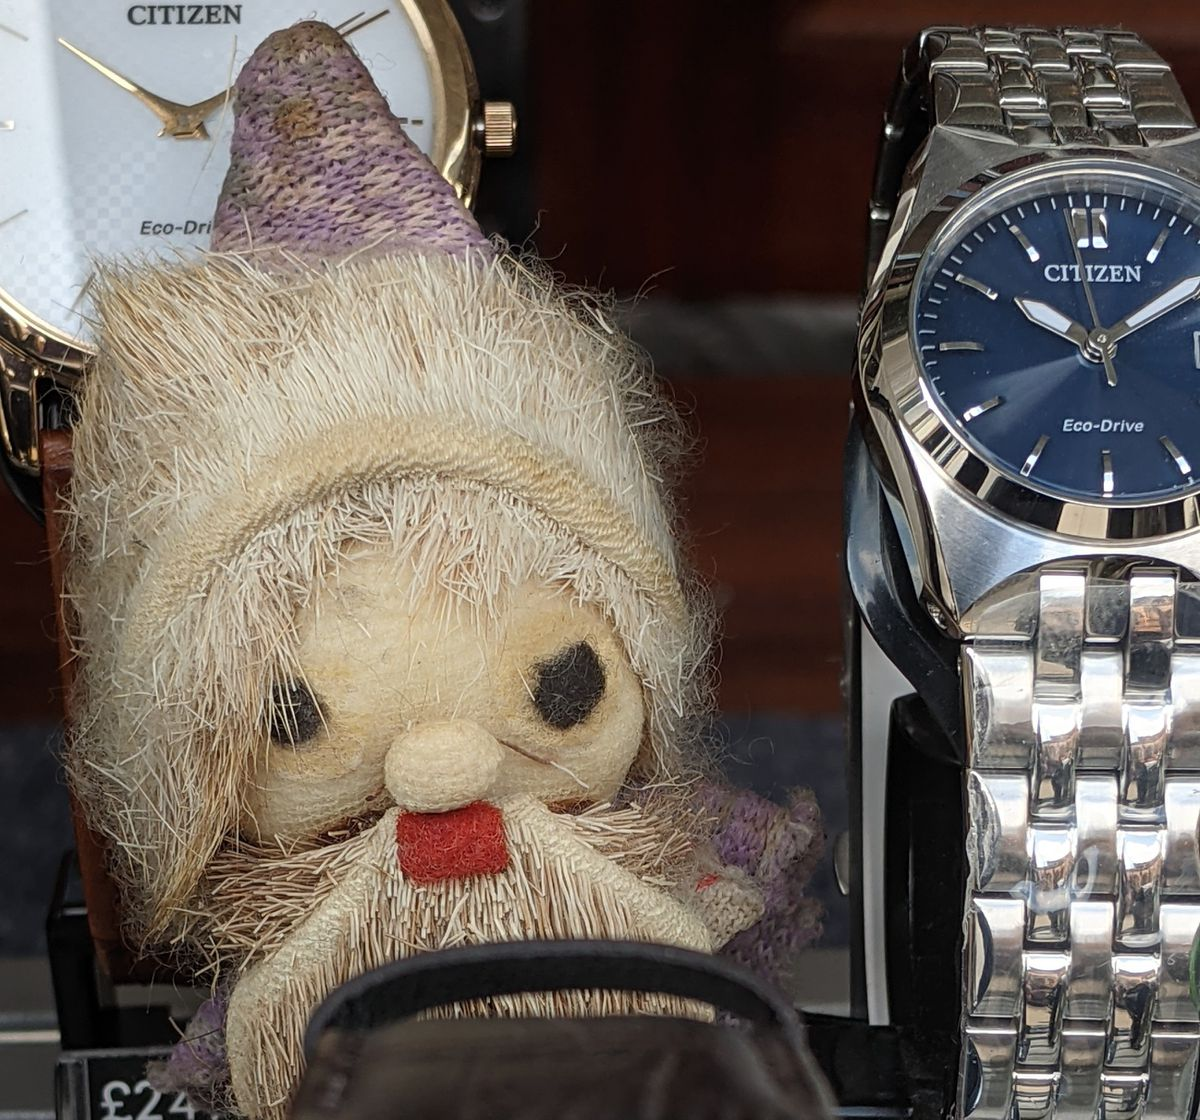 A cheeky chap hiding amongst watches in Newport